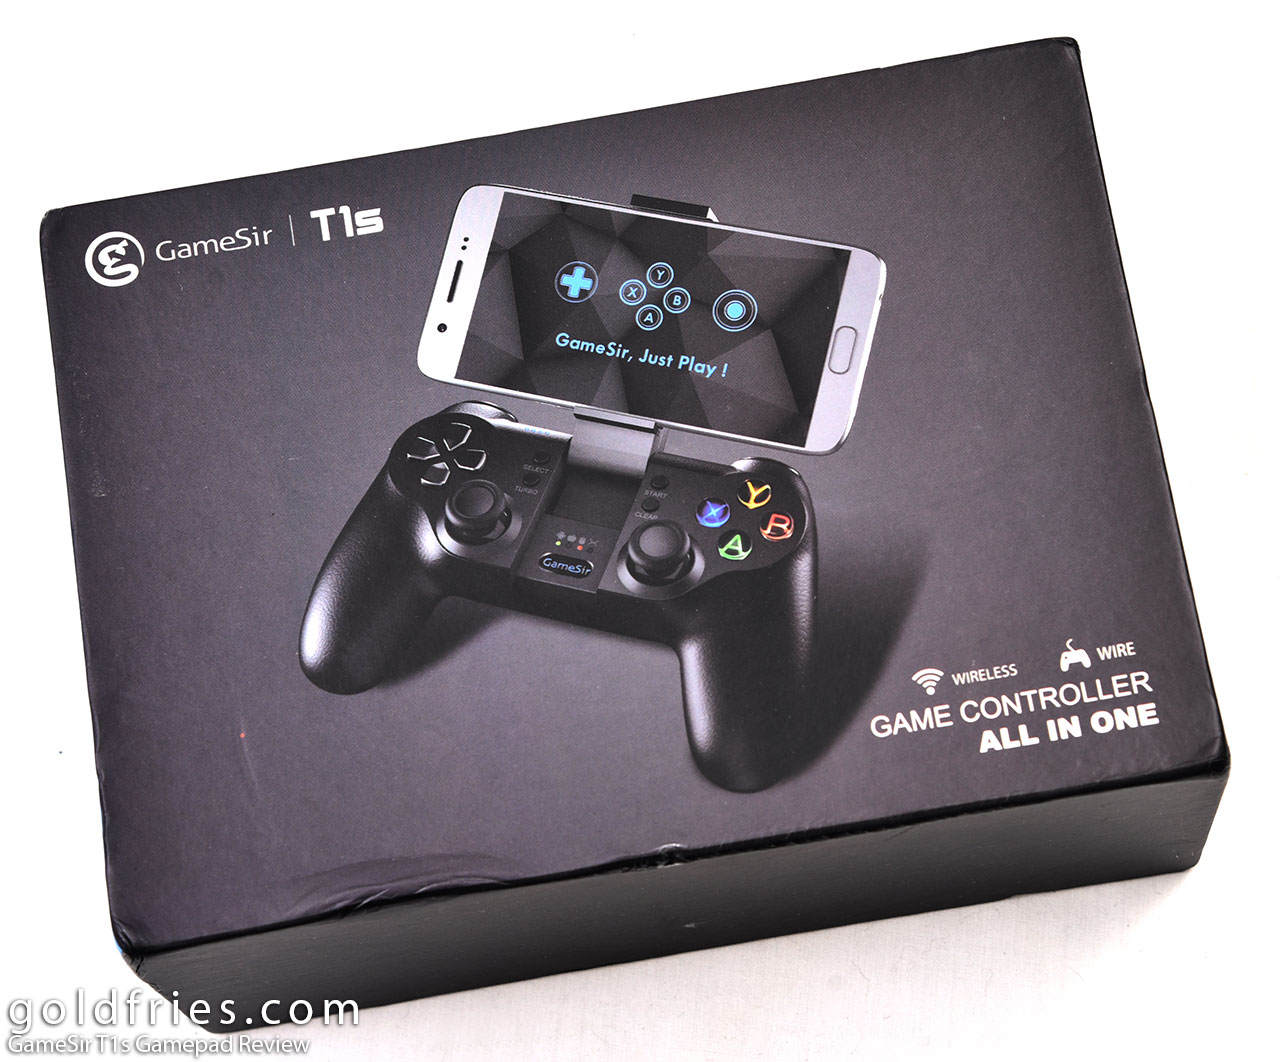 GameSir T1s Gamepad Review